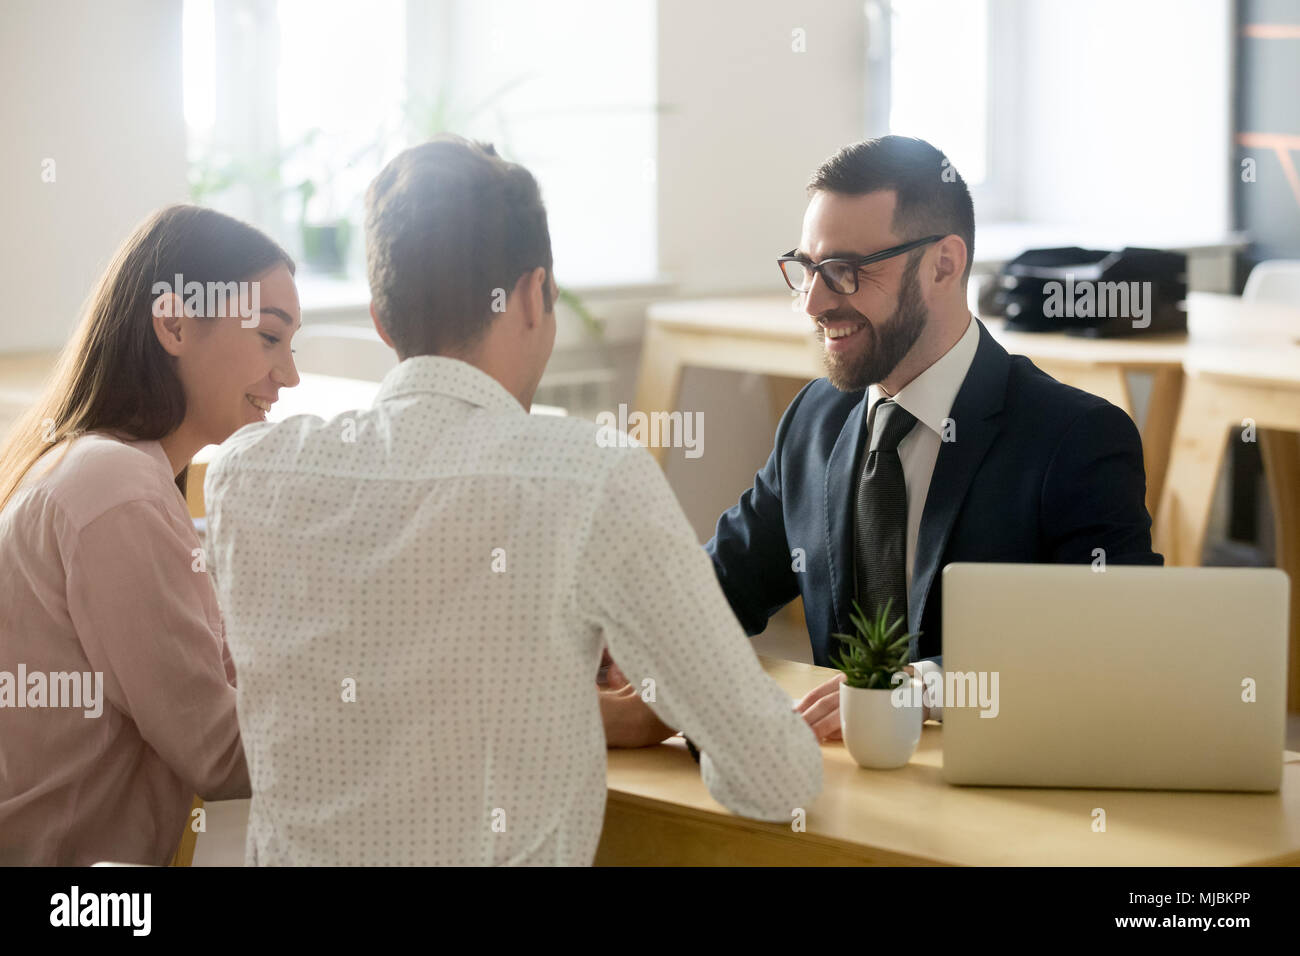 Friendly lawyer or financial advisor in suit consulting young co - Stock Image